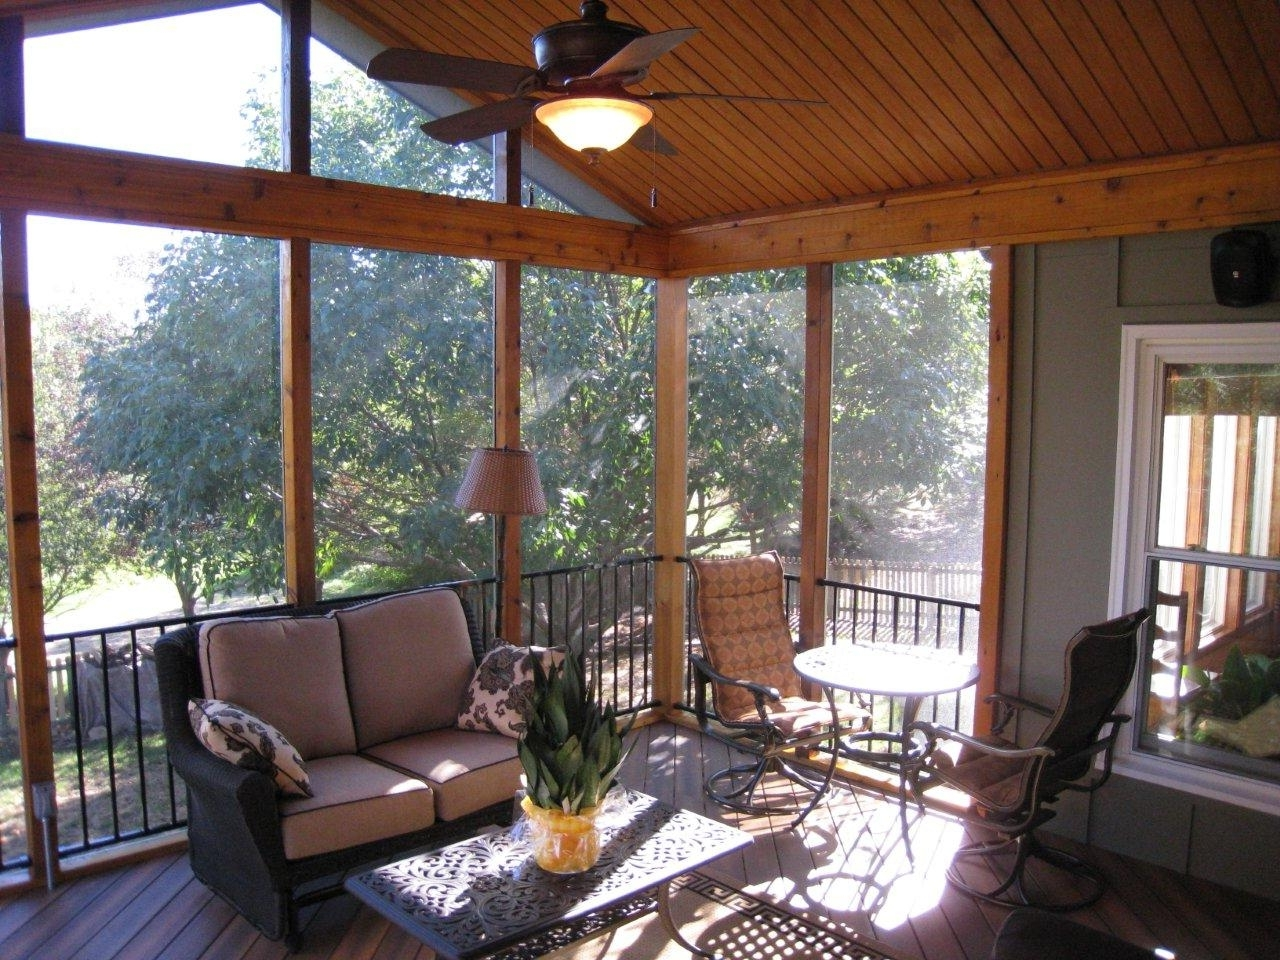 Outdoor Ceiling Fans For Porches Within Most Recently Released Low Profile Outdoor Ceiling Fans With Light In Farmhouse With (View 15 of 20)